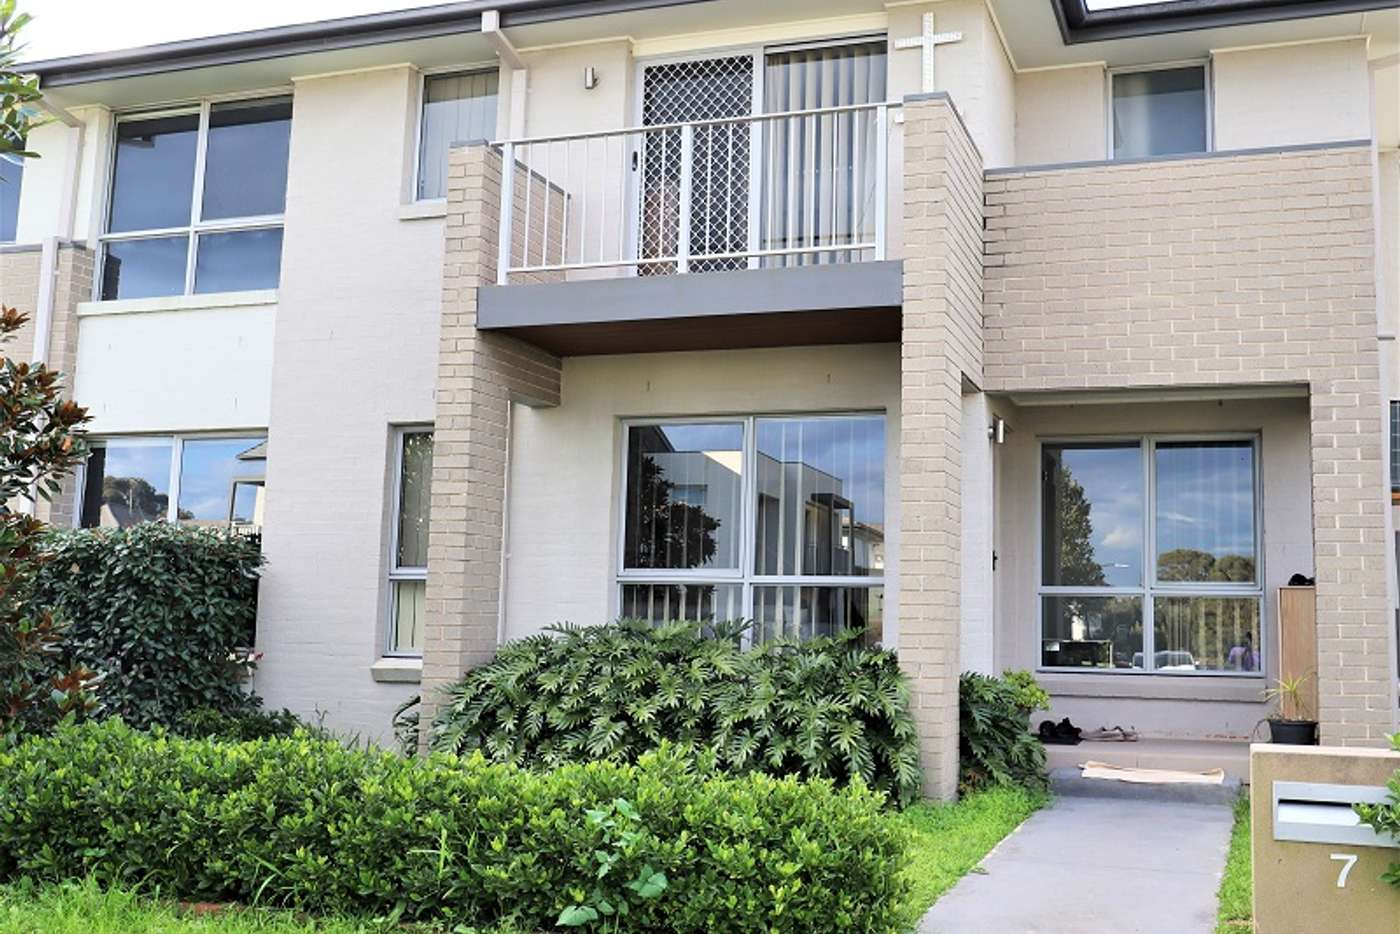 Main view of Homely house listing, 7 Braford Avenue, Elizabeth Hills NSW 2171